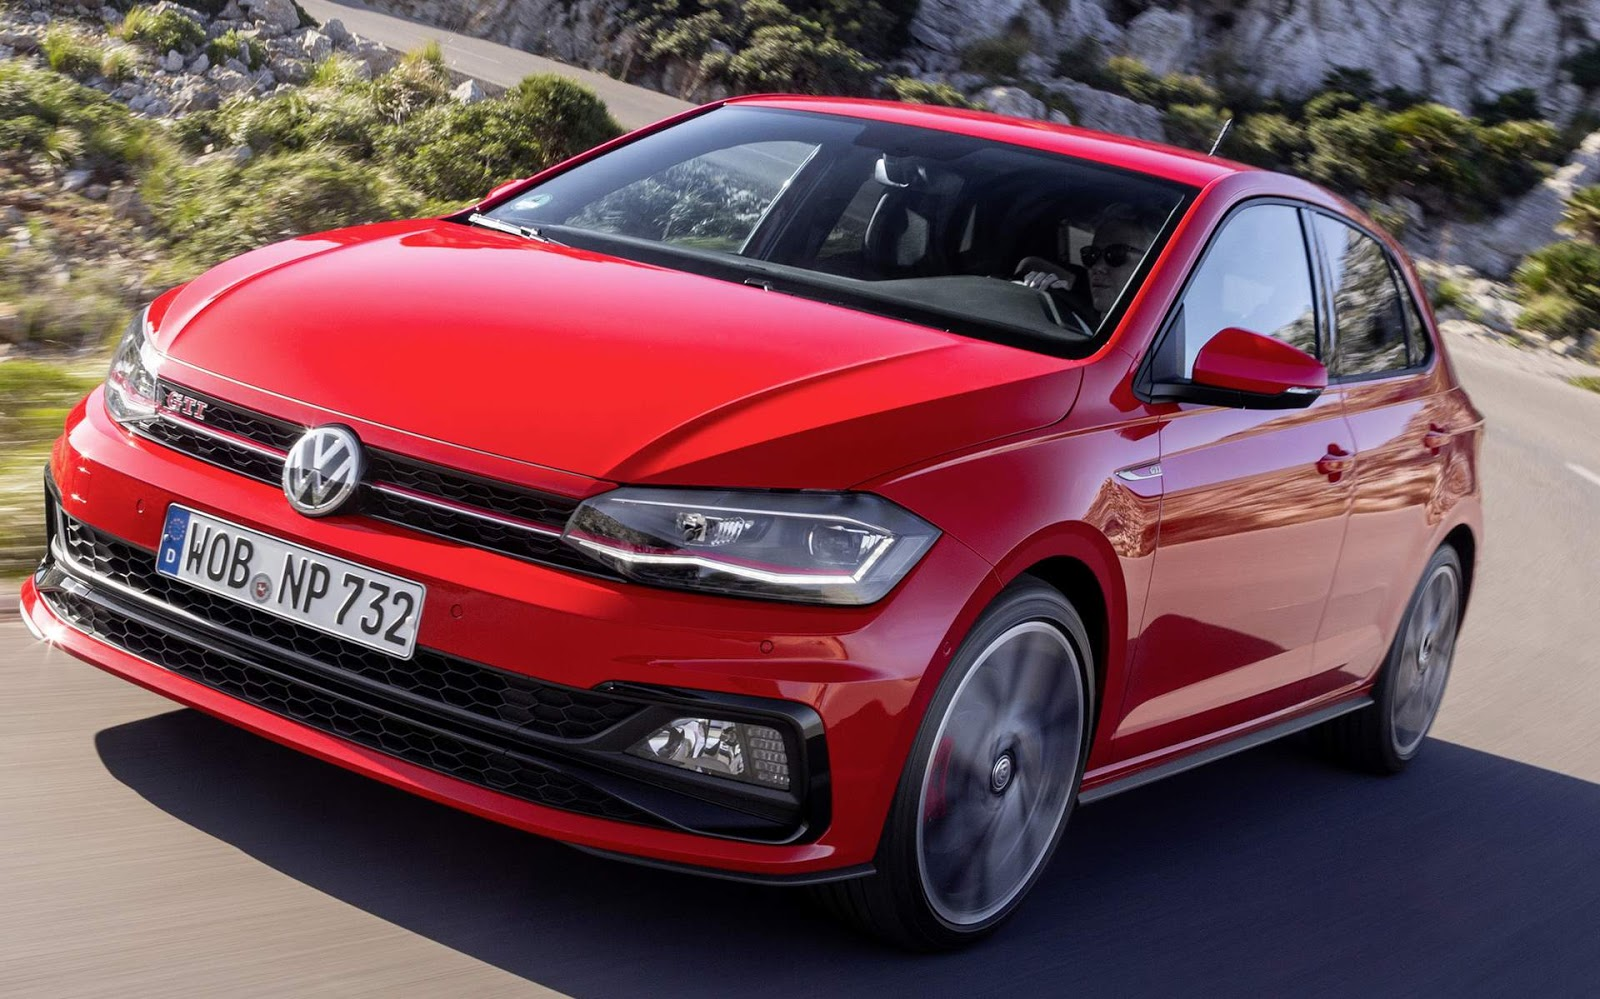 vw polo gti 2018 fotos e especifica es oficiais europa muito mais carros. Black Bedroom Furniture Sets. Home Design Ideas